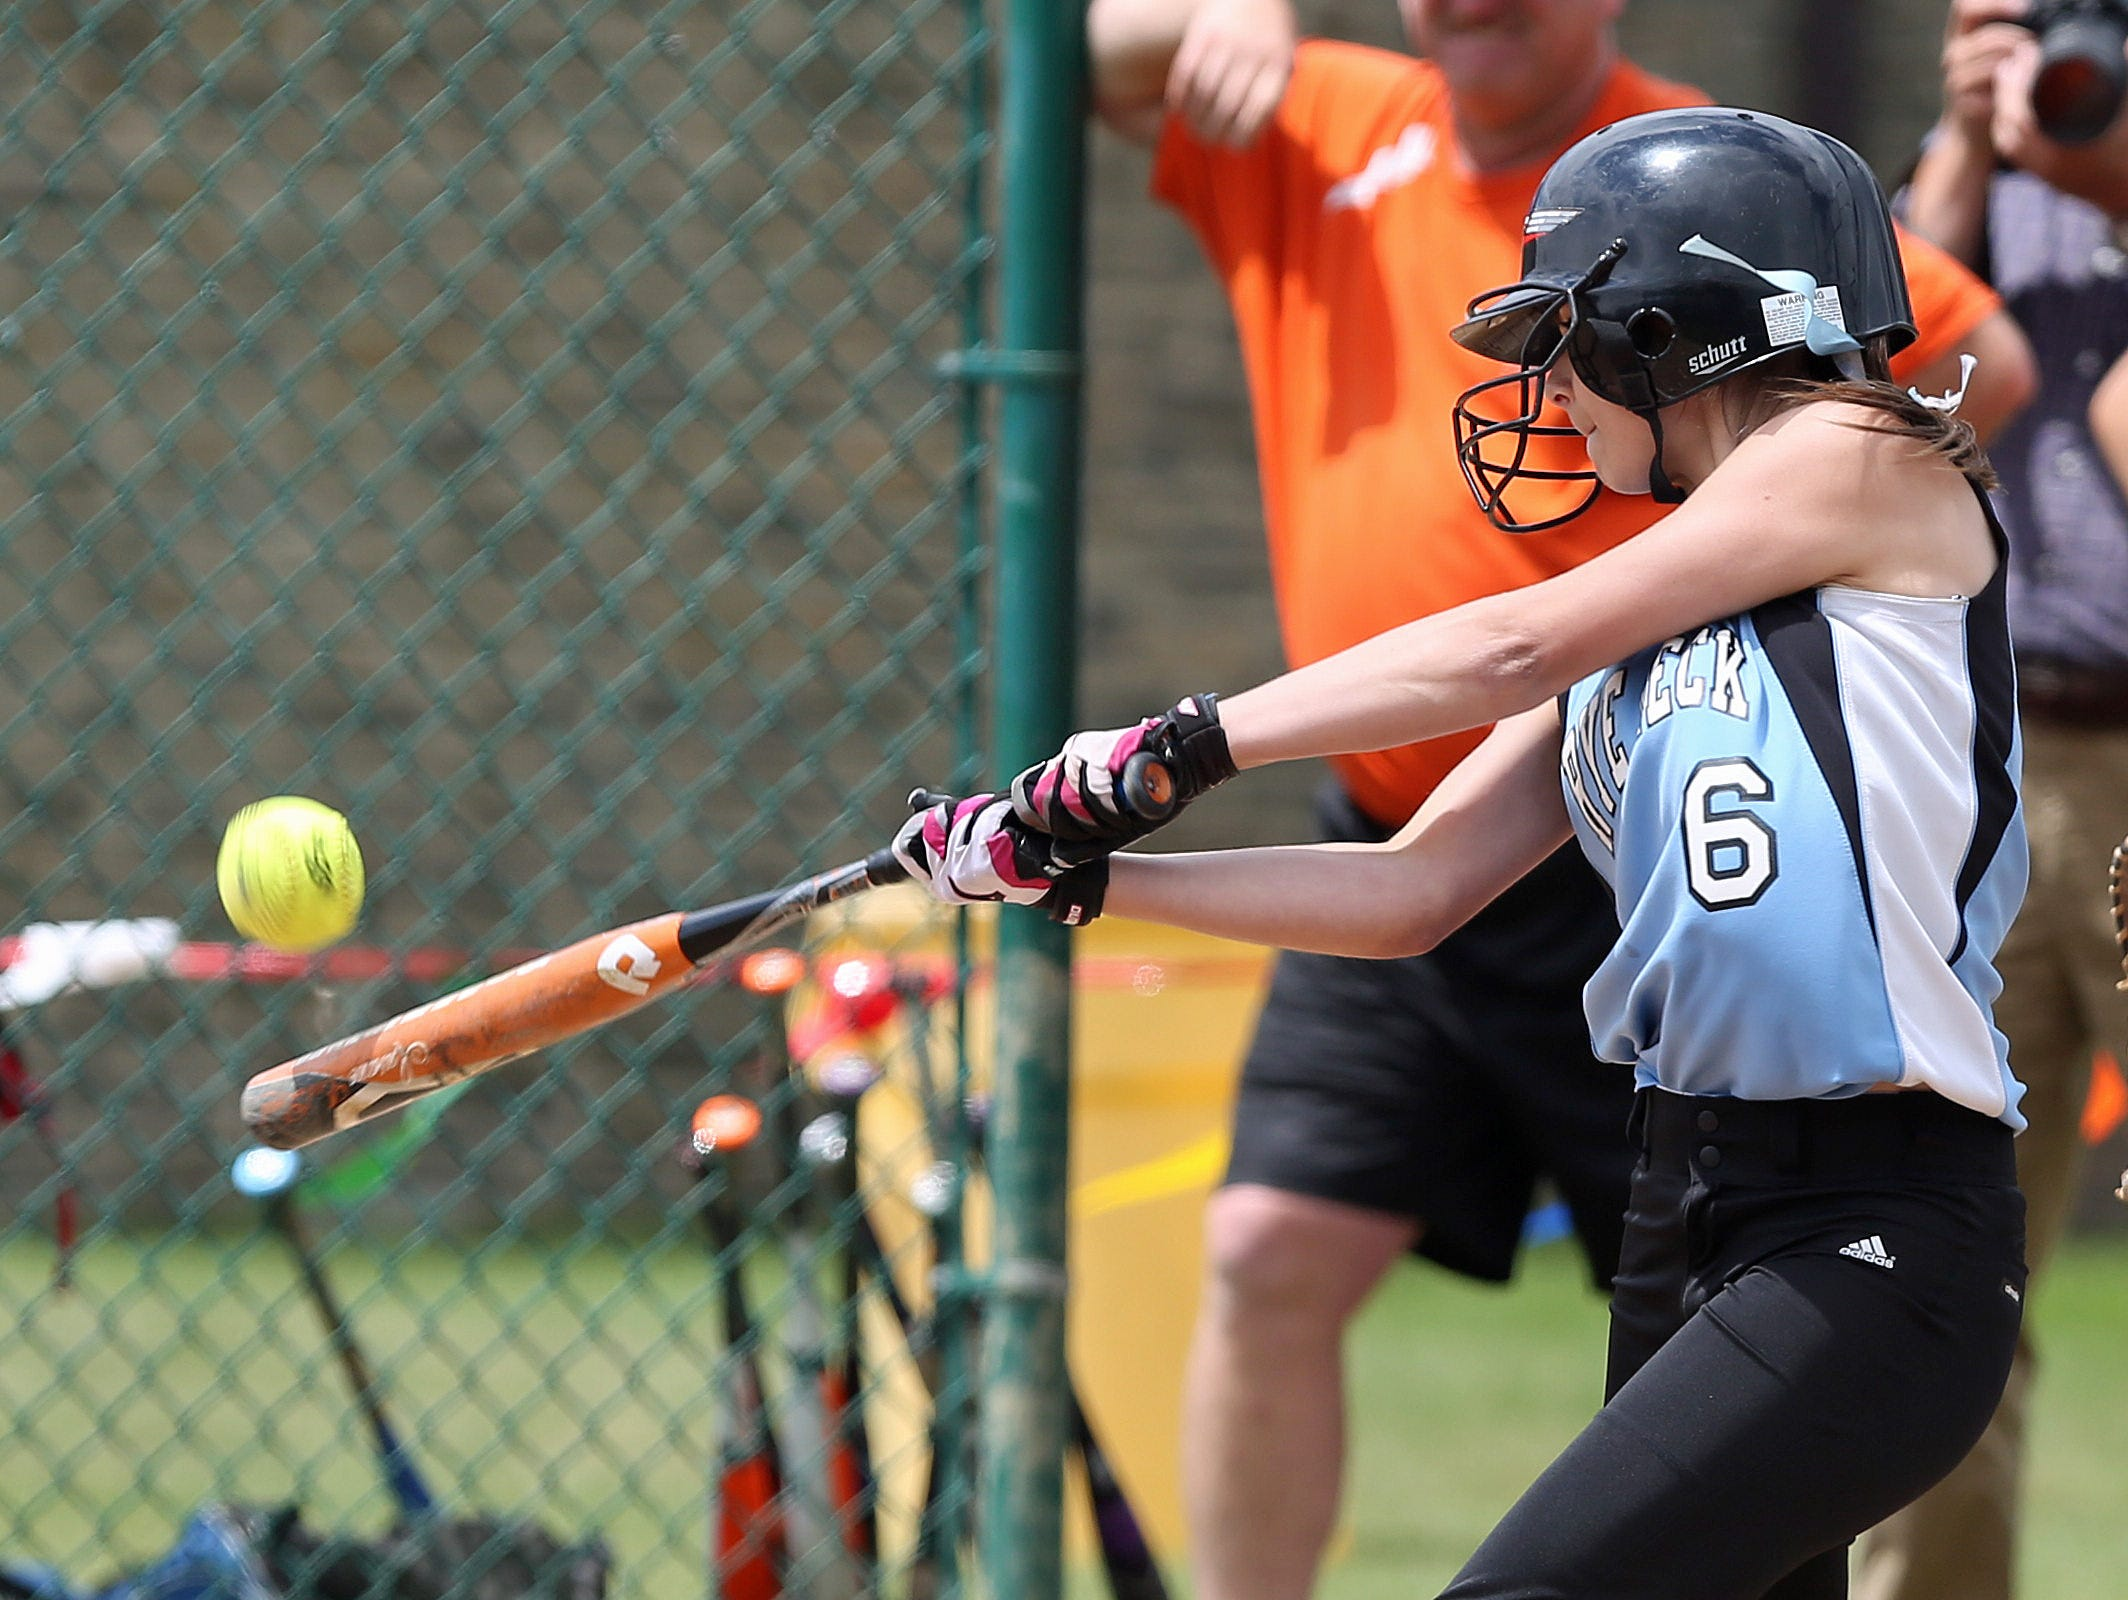 Marlboro defeated Rye Neck 4-3 in the girls softball Class B regional semi final in Rhinebeck June 4, 2015.